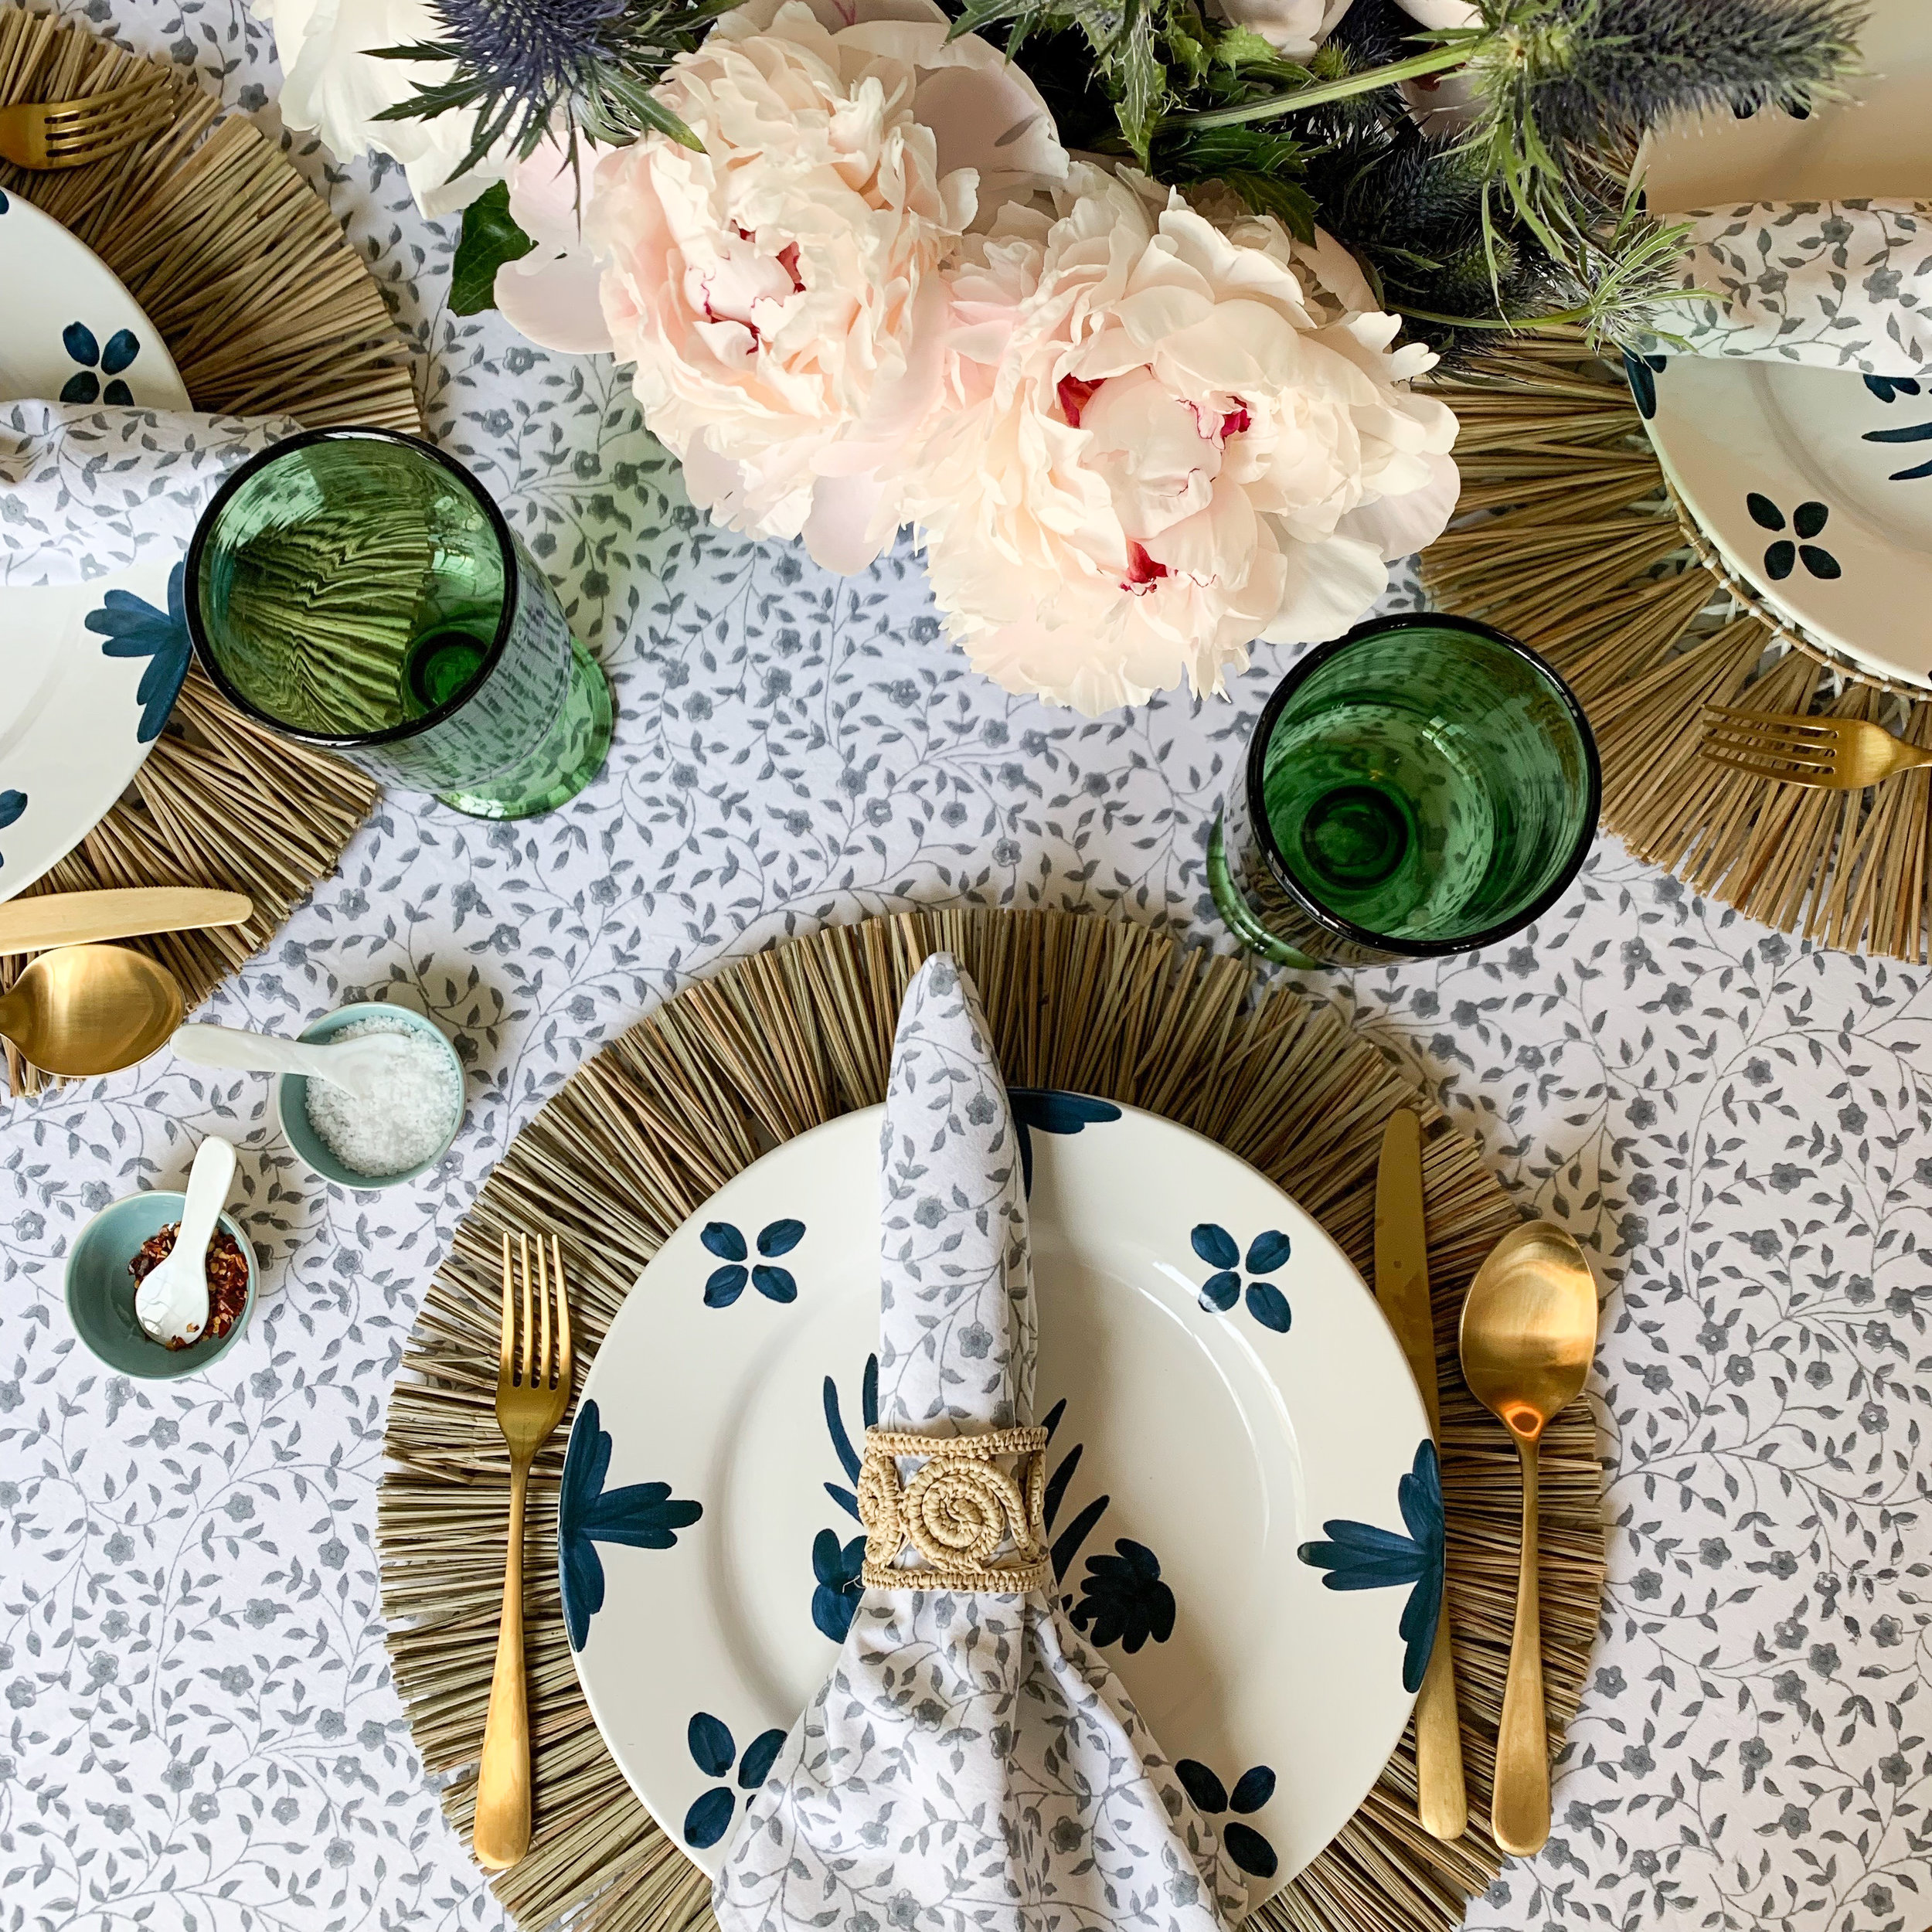 Simply Elegant Blog - Dinner Table Setting with India Amory 2